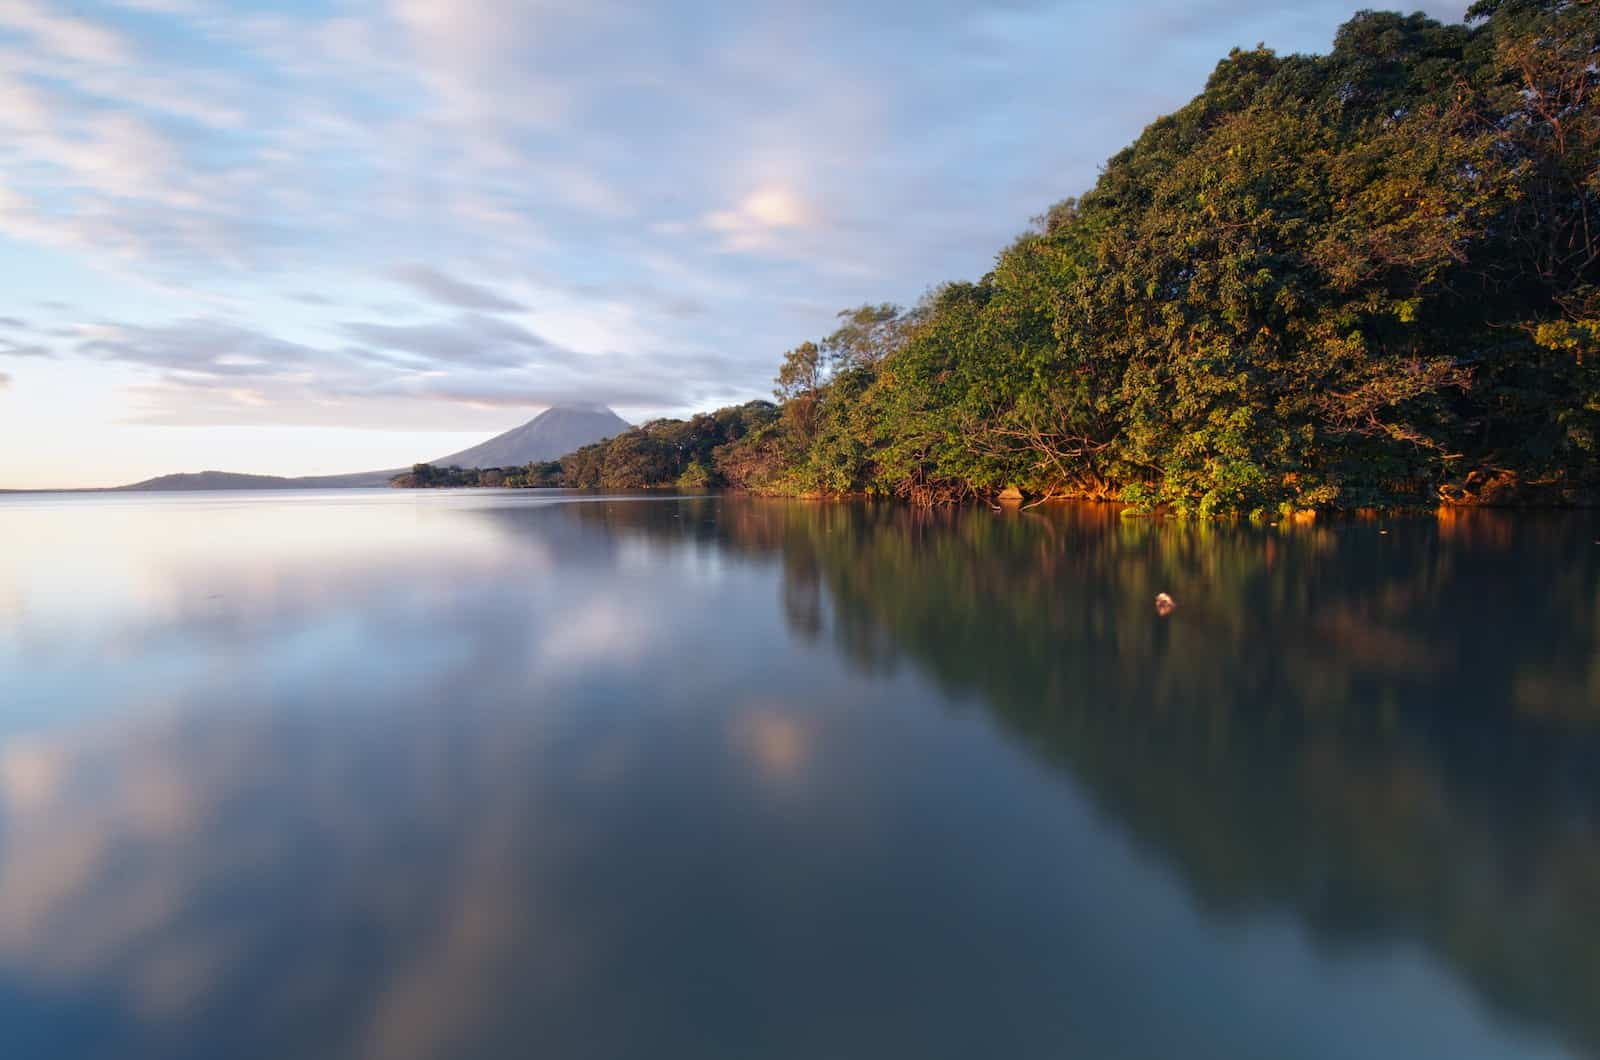 Nicaragua confirms canal route